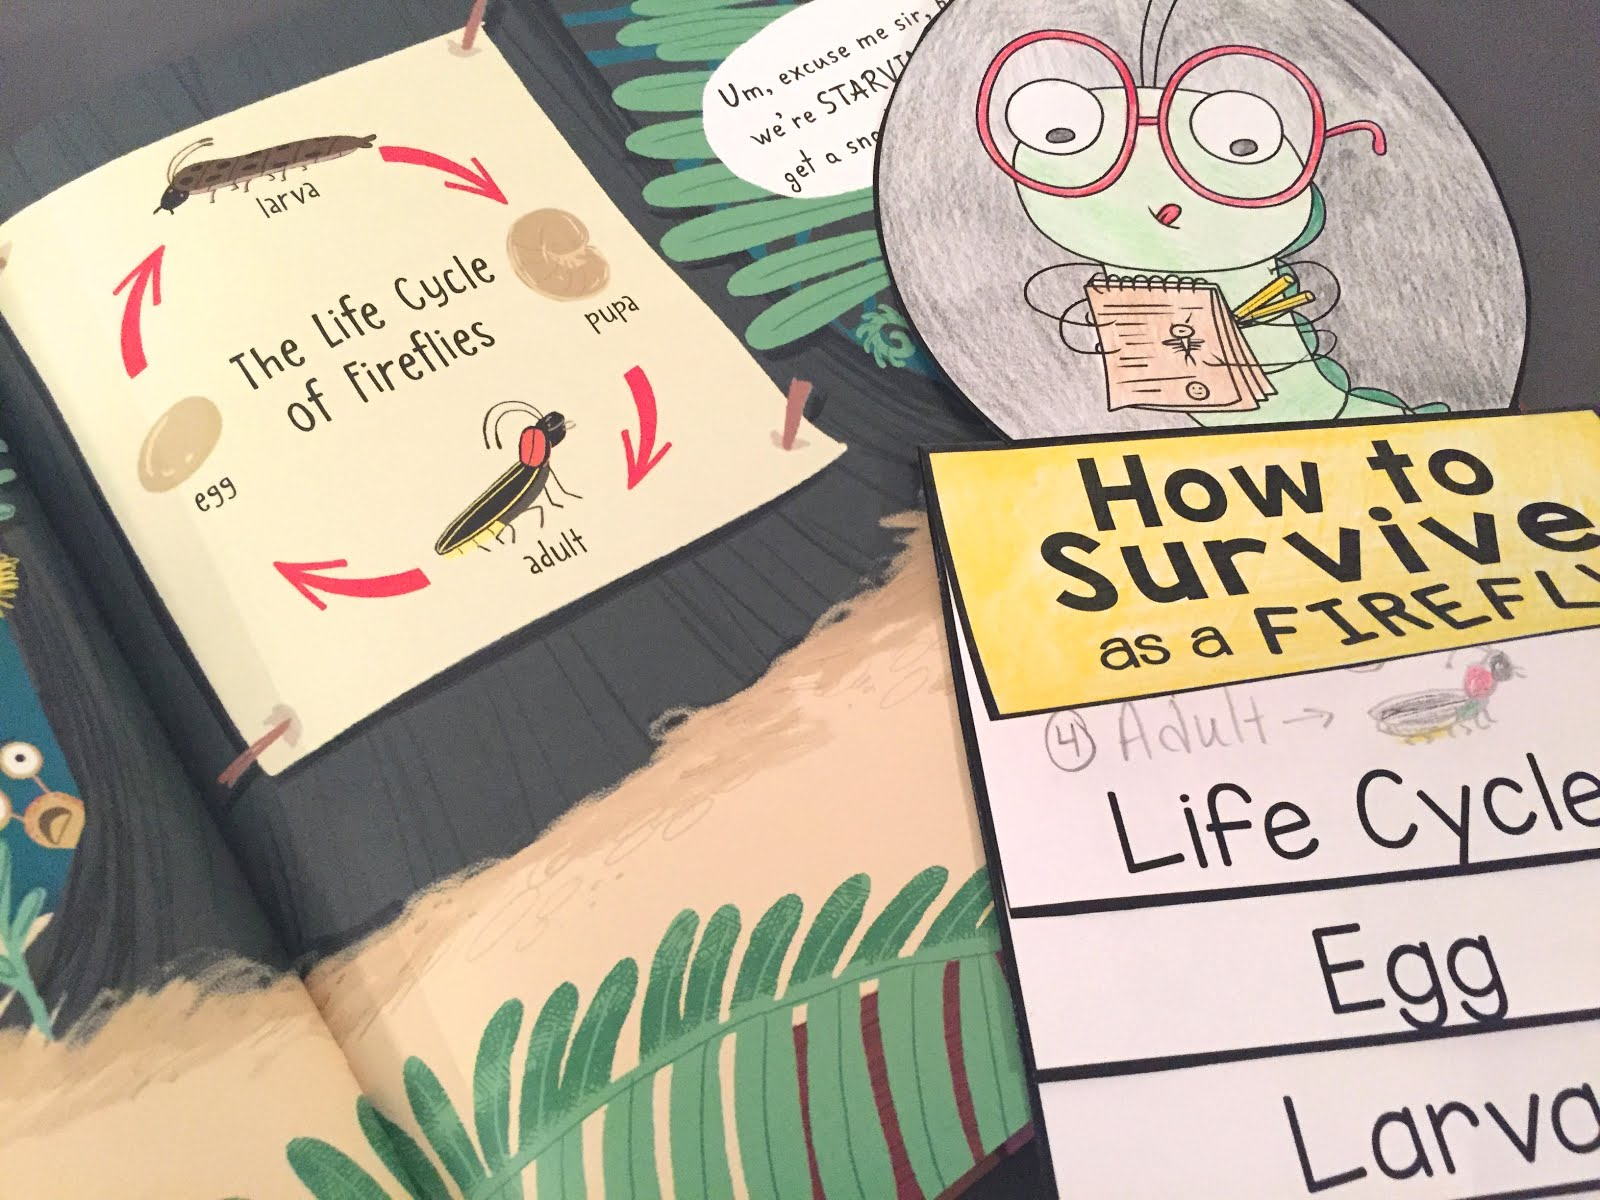 Free How To Survive As A Firefly Life Cycle Flip Book